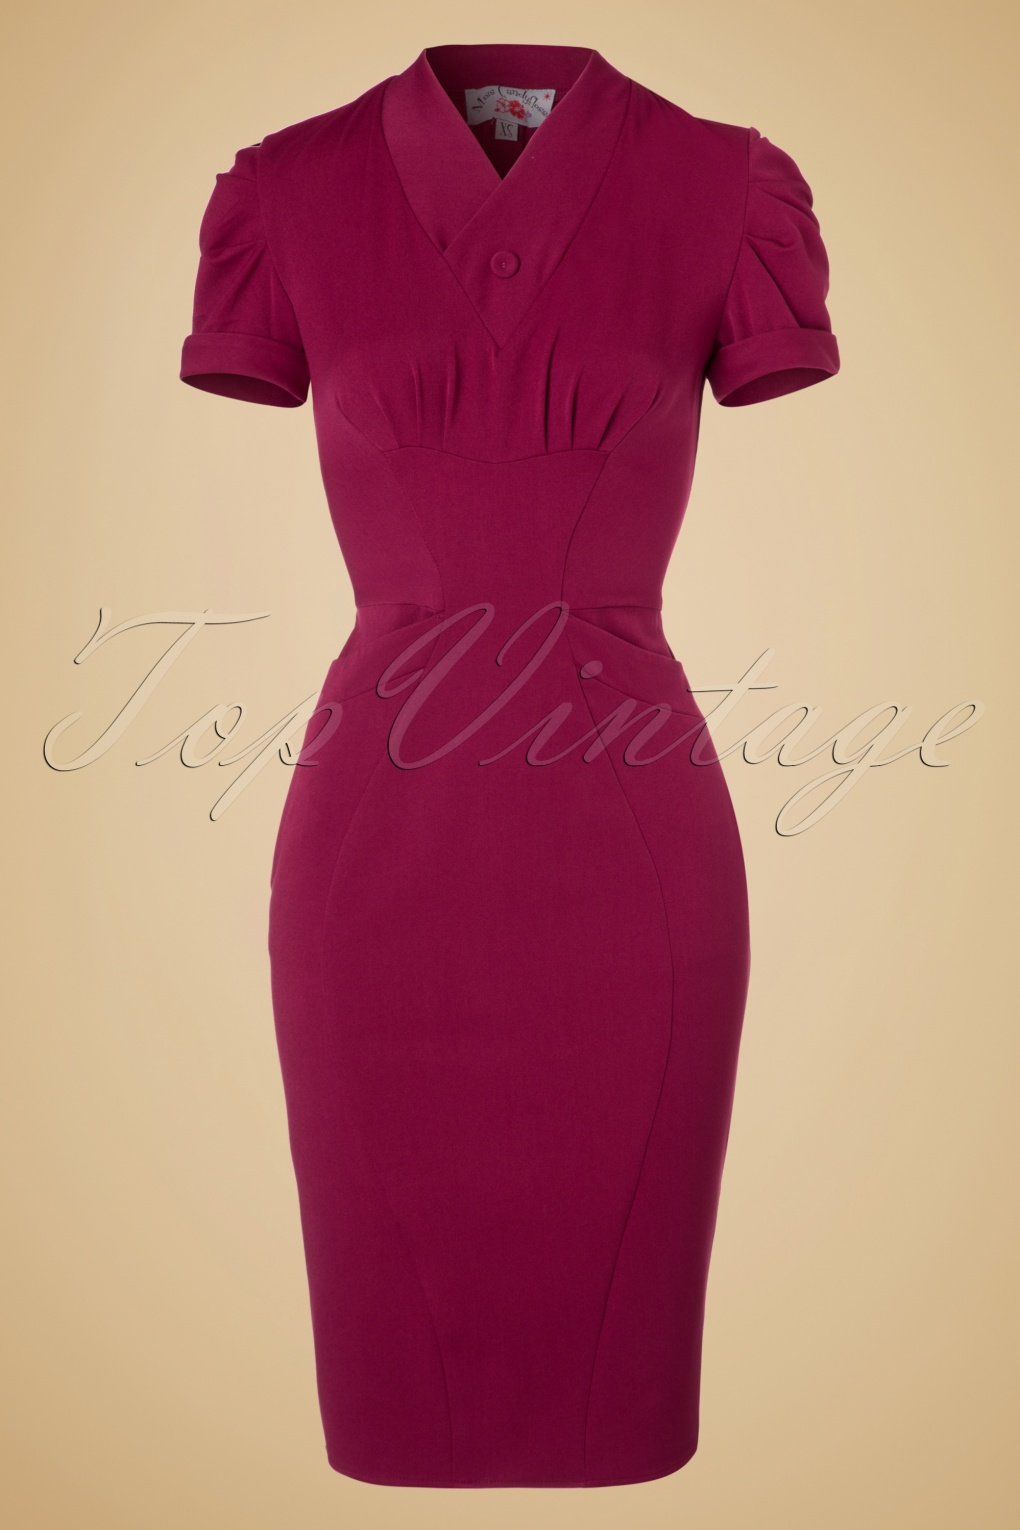 1940s Cocktail, Pin up and Bombshell Dresses Guide 40s Germaine Lee Pencil Dress in Raspberry £42.35 AT vintagedancer.com